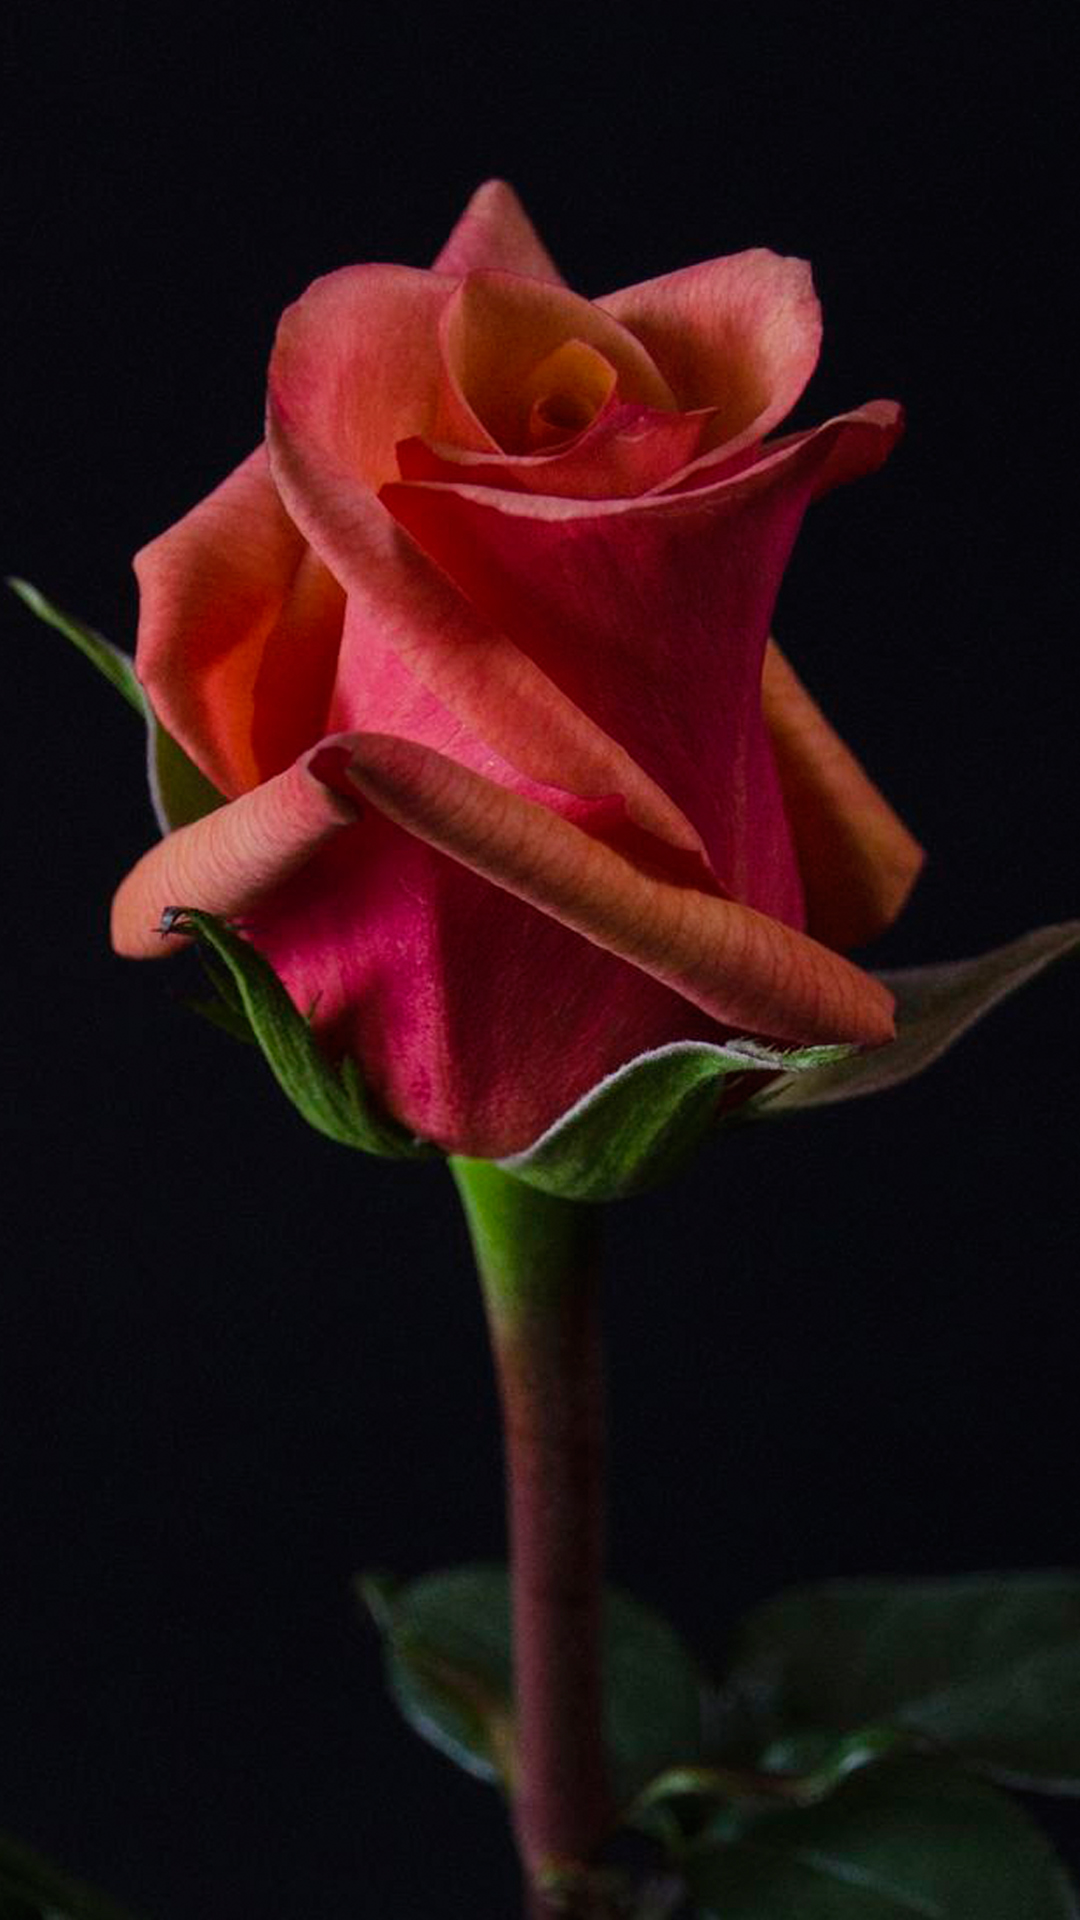 Close up photo of red rose flower with dark background for - Rose flowers wallpaper for mobile ...